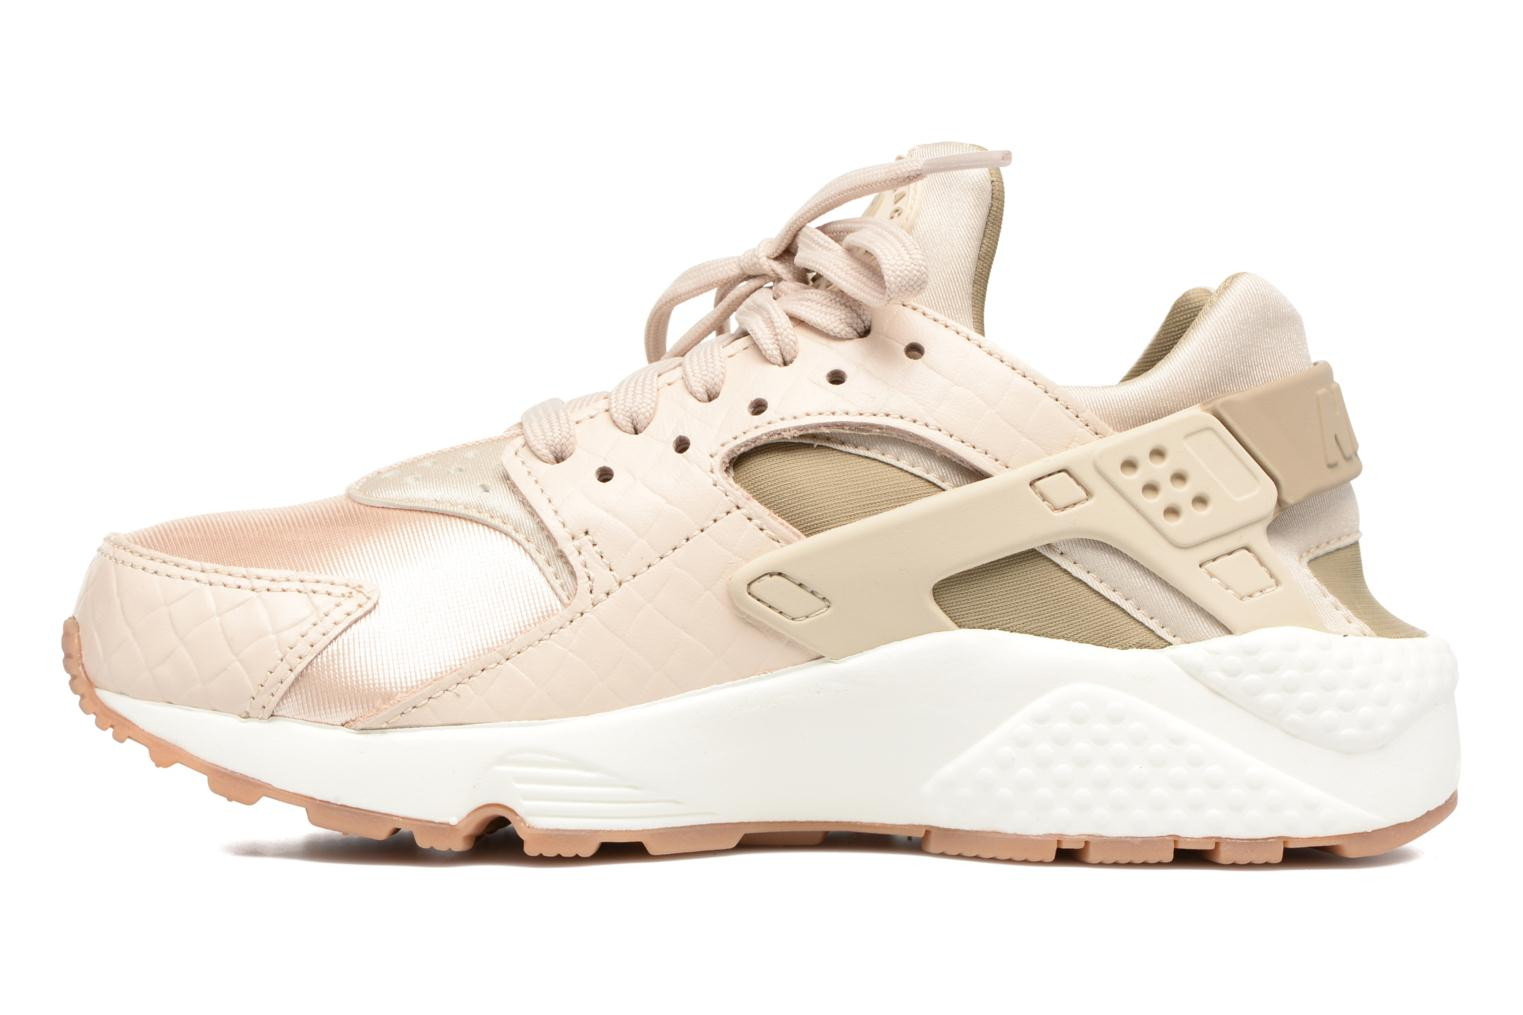 Wmns Air Huarache Run Prm Oatmeal/Khaki-Sail-Gum Med Brown